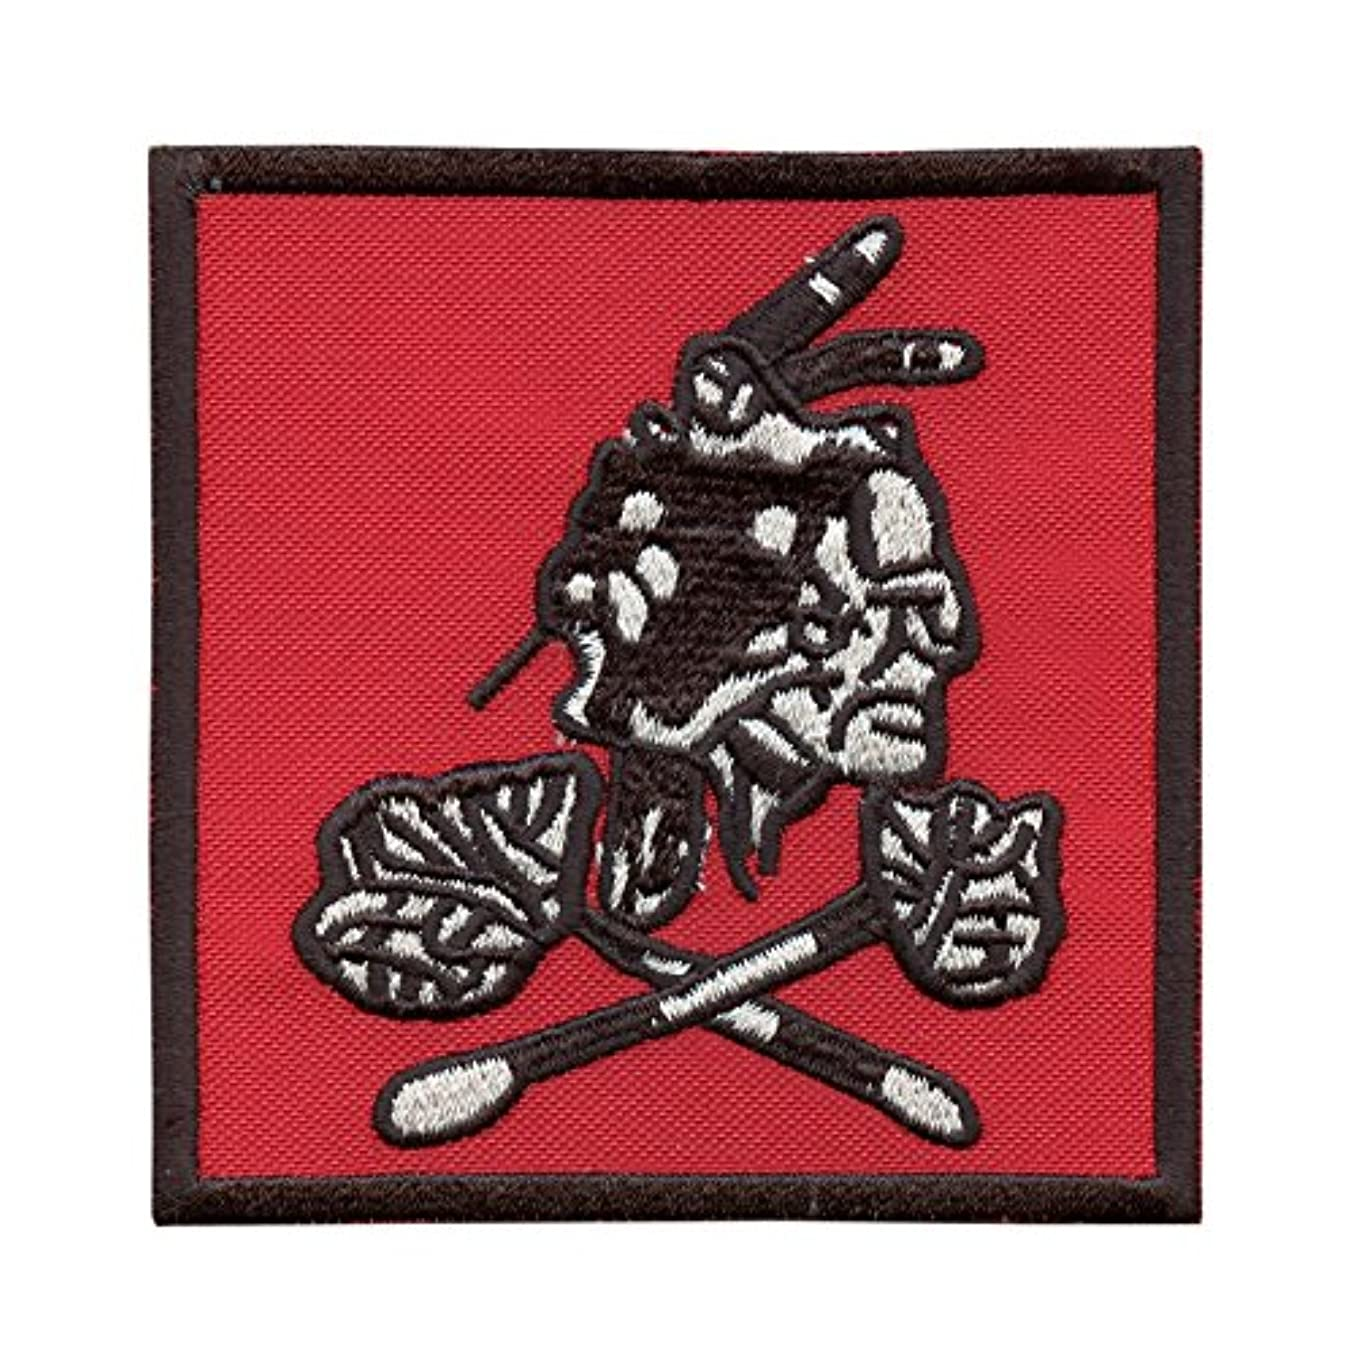 LEGEEON US Navy Seals Red Team Squadron The Tribe Morale DEVGRU Fastener Patch